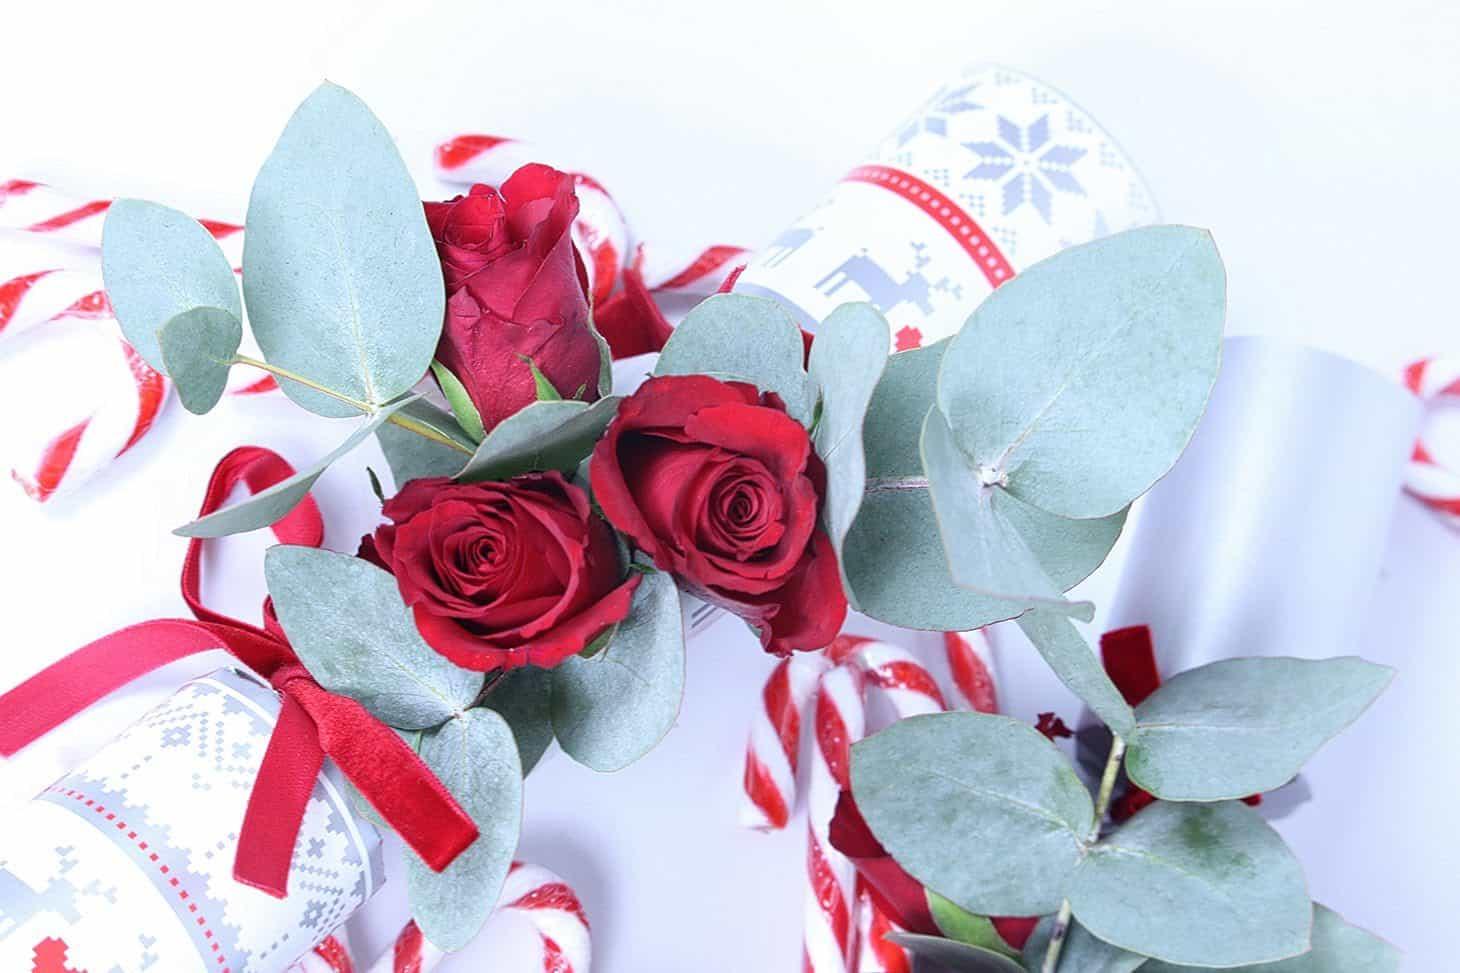 Christmas Flower DIY, DIY Christmas Flowers, botanical Xmas cracker, christmas cracker, winter DIY, red roses, flower winter wonderland, decorate for christmas party, christmas table decor